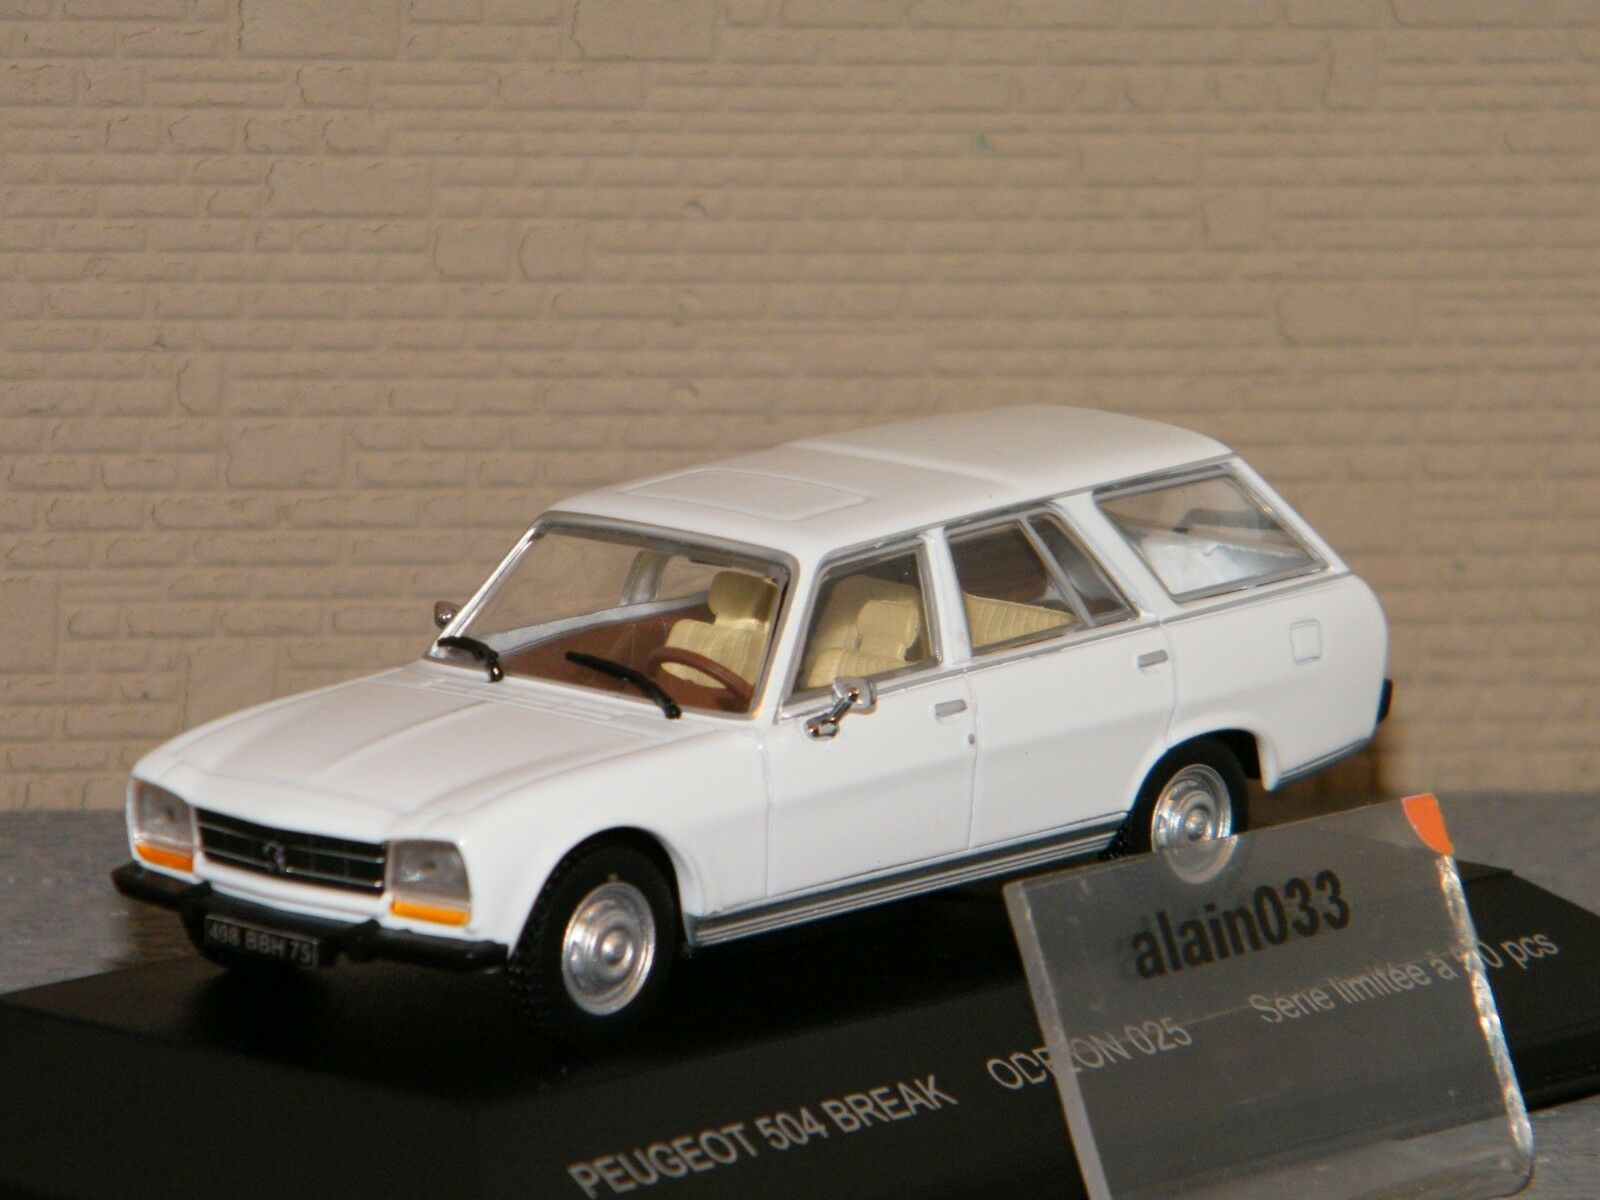 PEUGEOT 504 BREAK BLANCHE ODEON 1 43 Ref 025